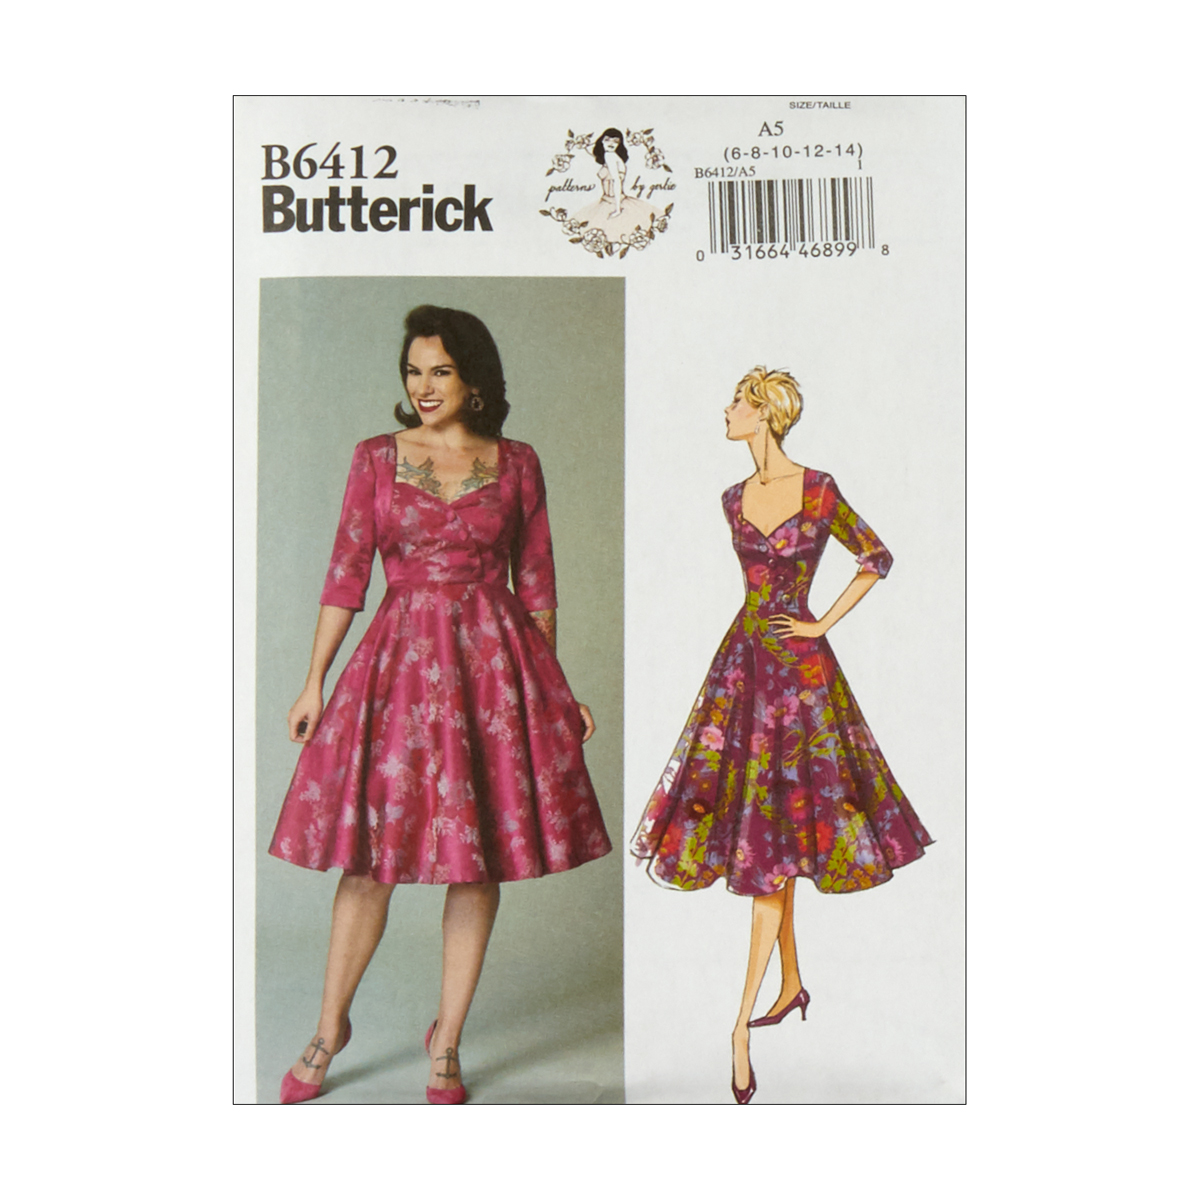 42f229082 1950s Fabrics   Colors in Fashion Butterick B6412 Patterns by Gertie  Sweetheart-Neckline Full-